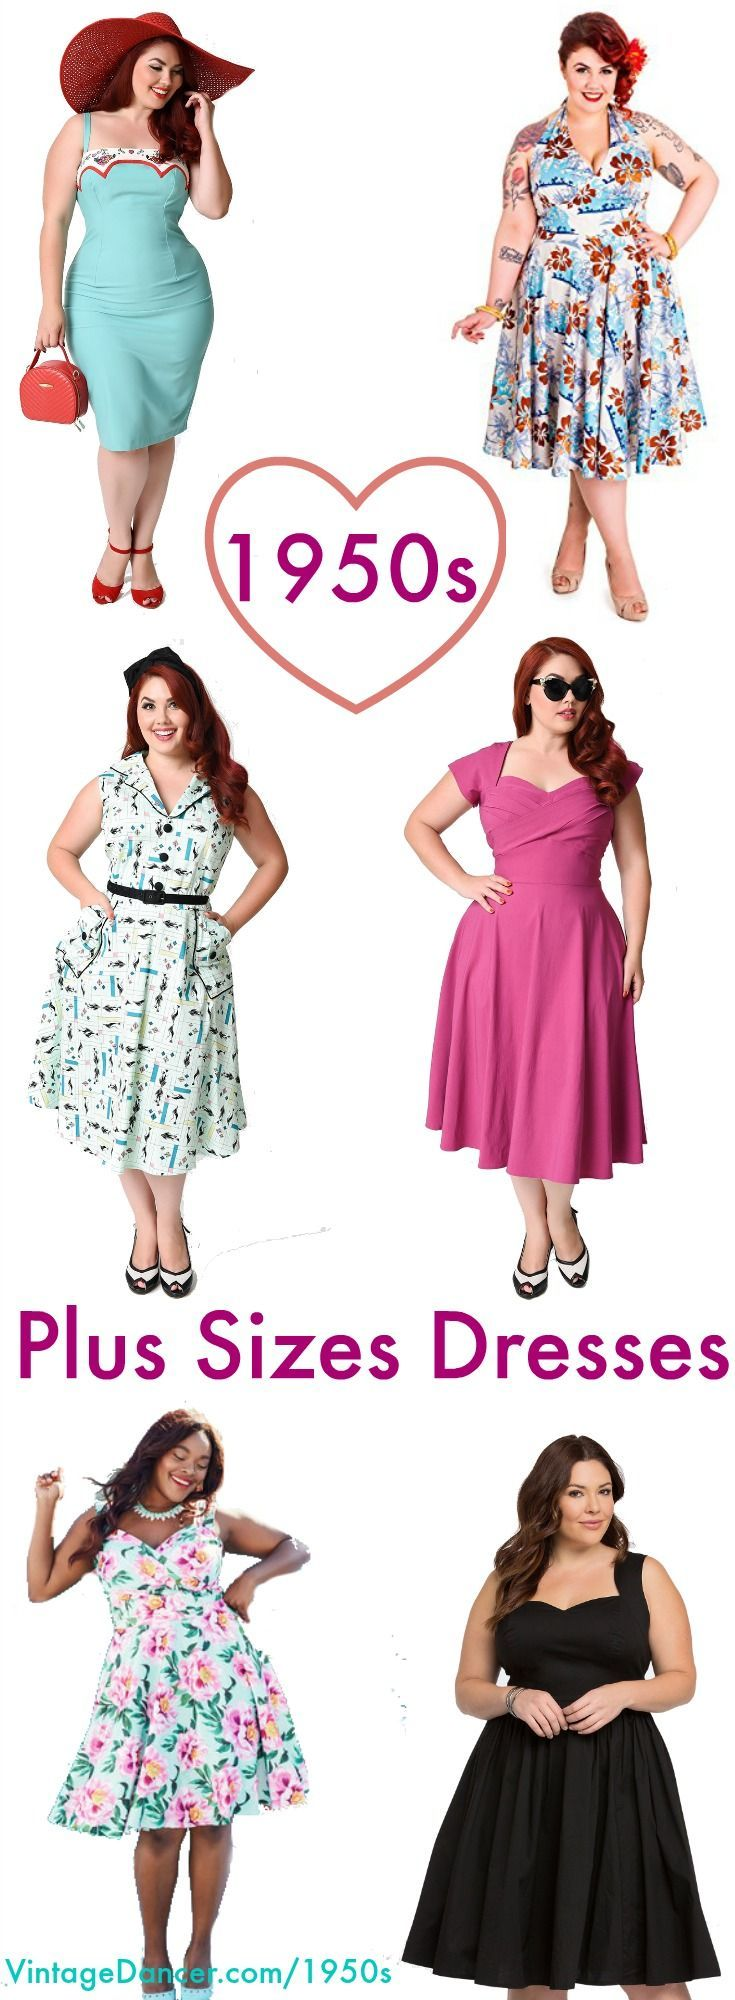 Retro vintage pinup 1950s plus size dresses for summer at VintageDancer.com/1950s